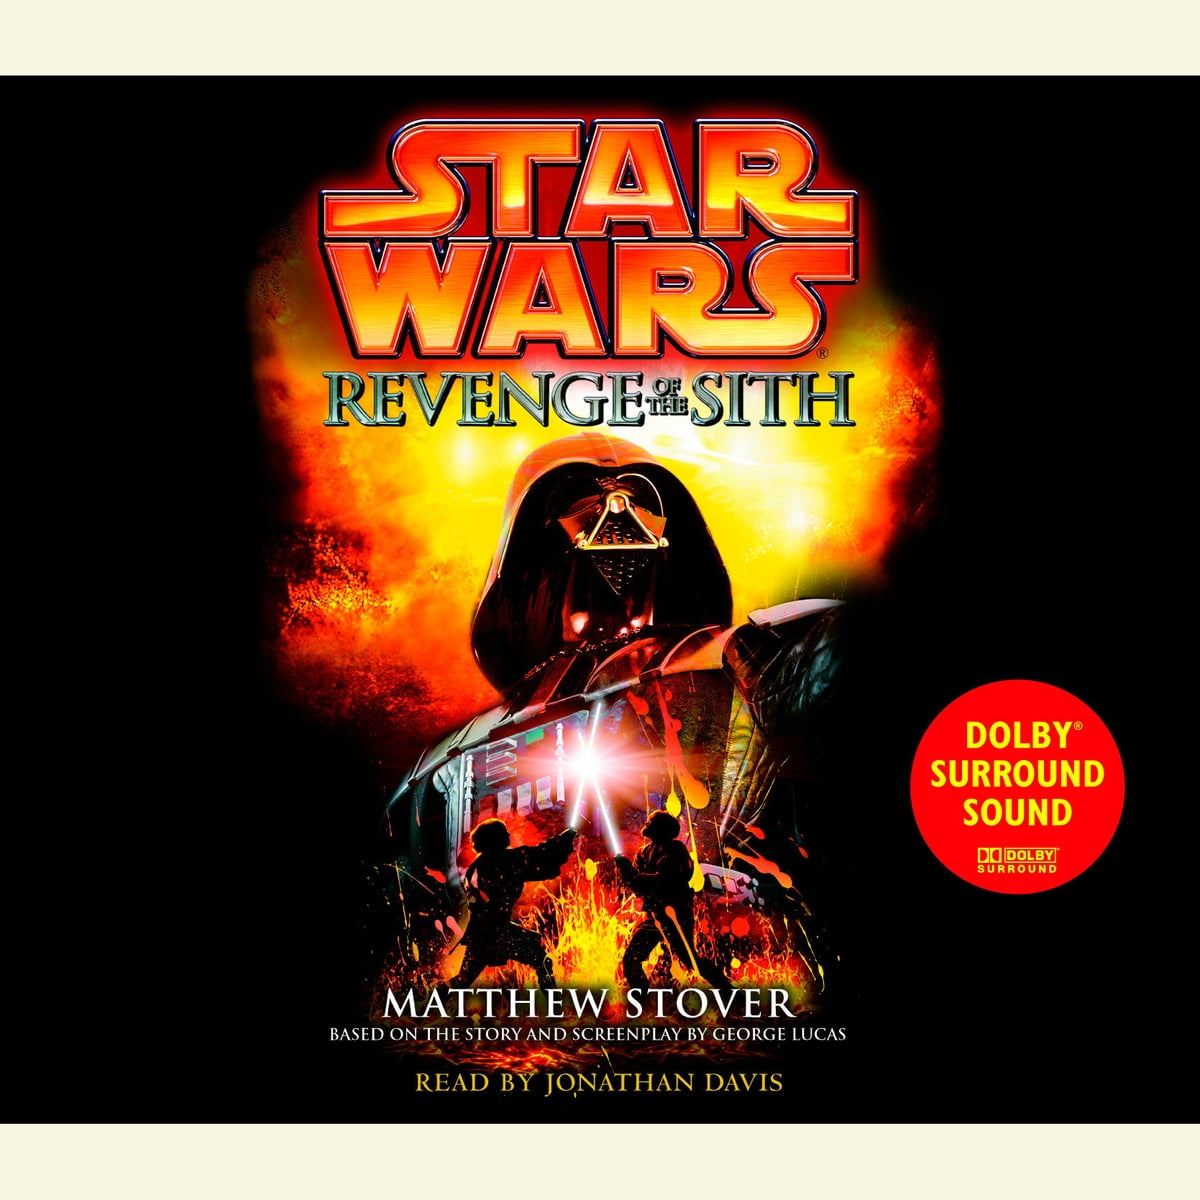 Star Wars Episode Iii Revenge Of The Sith Audiobook By Matthew Stover 9780739333150 Rakuten Kobo United States